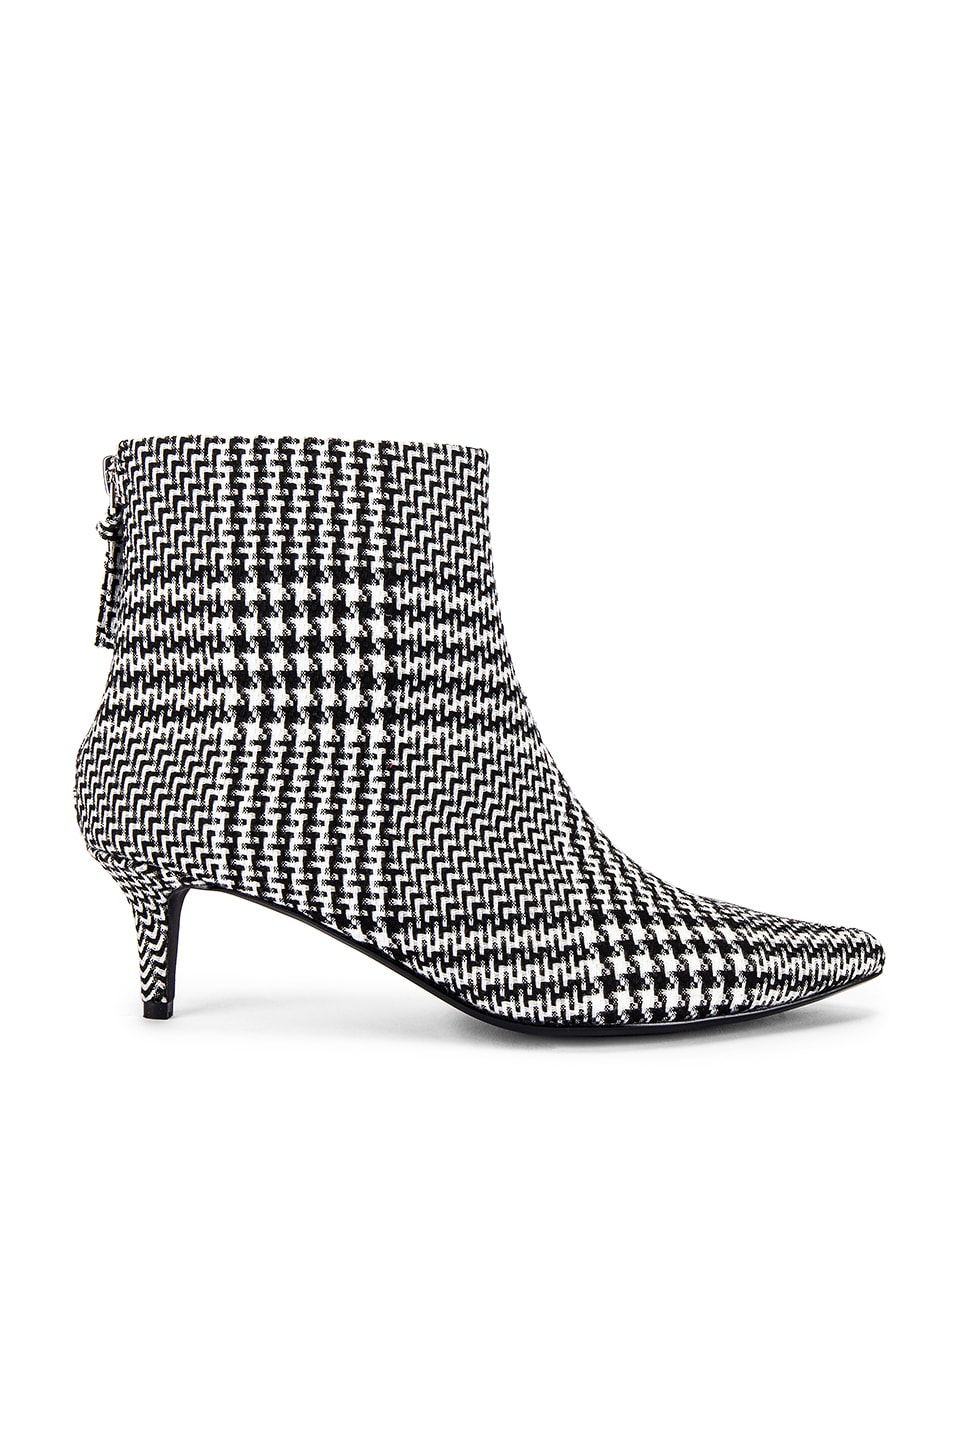 KENDALL + KYLIE Kara Bootie in Black & White